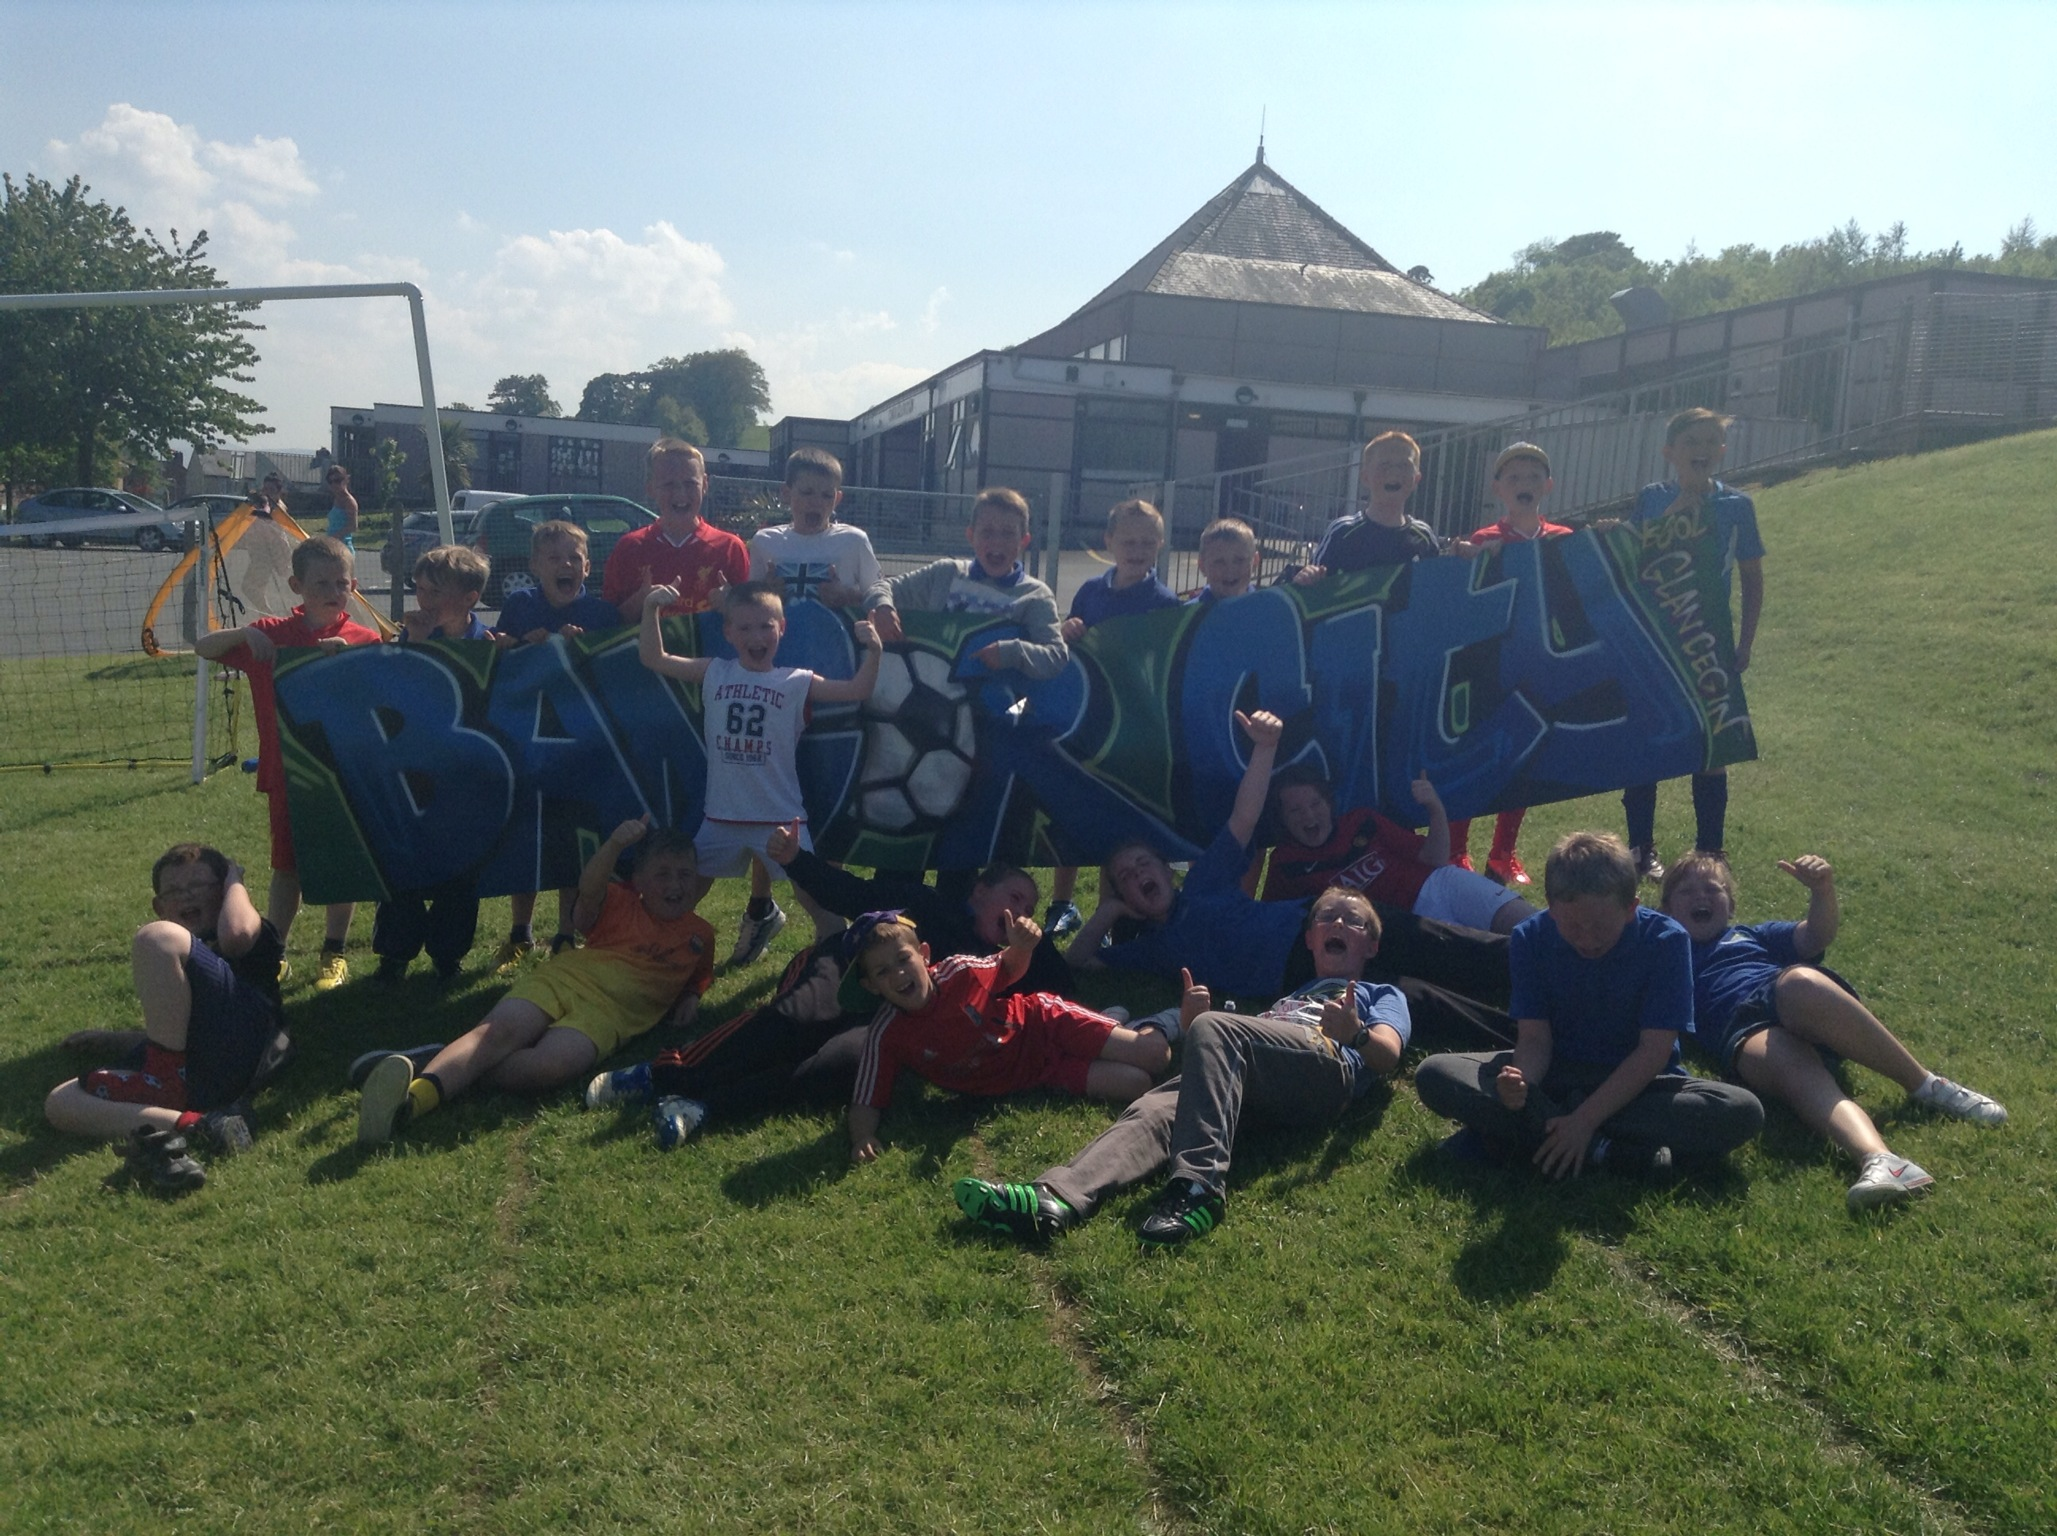 Vauxhall Fun Football Scheme survey shows 30% boost in participation